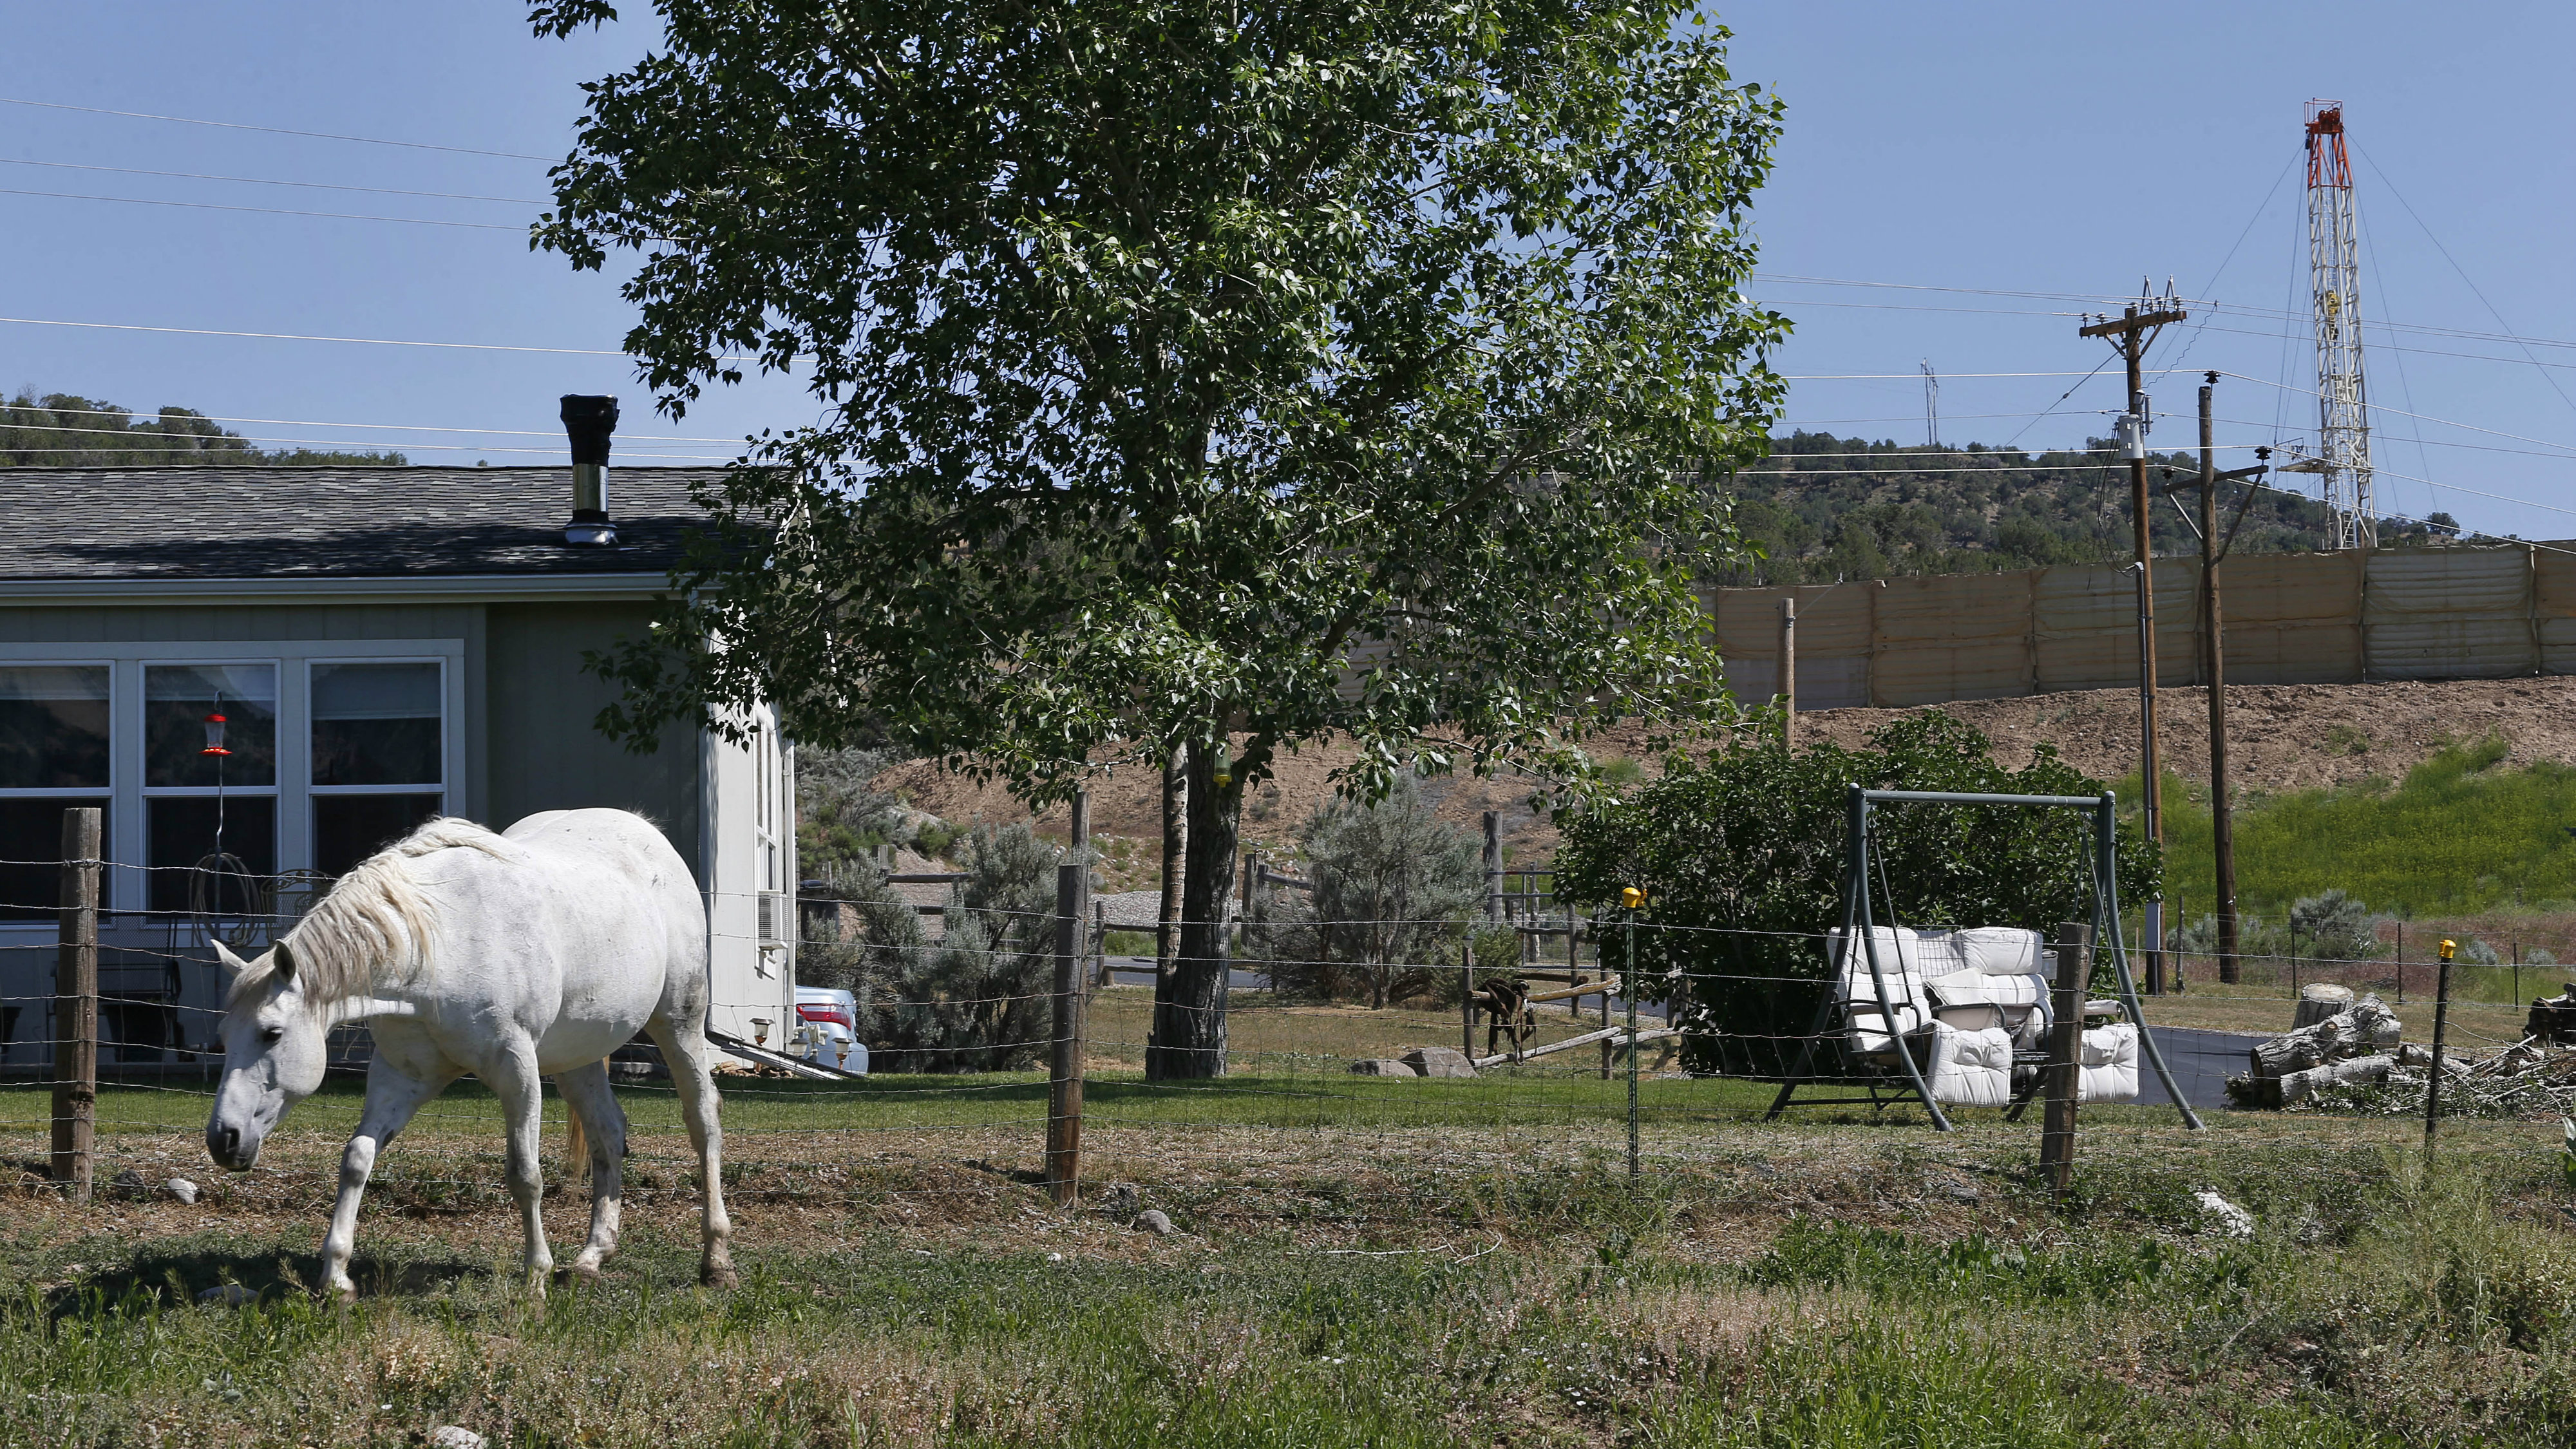 <p>This photo taken June 9, 2014 shows a horse named Primo grazing in front of the home of local resident Joann Aramillo, with an oil and gas rig on a well pad visible a few hundred yards away, top right, in New Castle, a small farming and ranching settlement on the Western Slope of the Rockies, in Colo.</p>